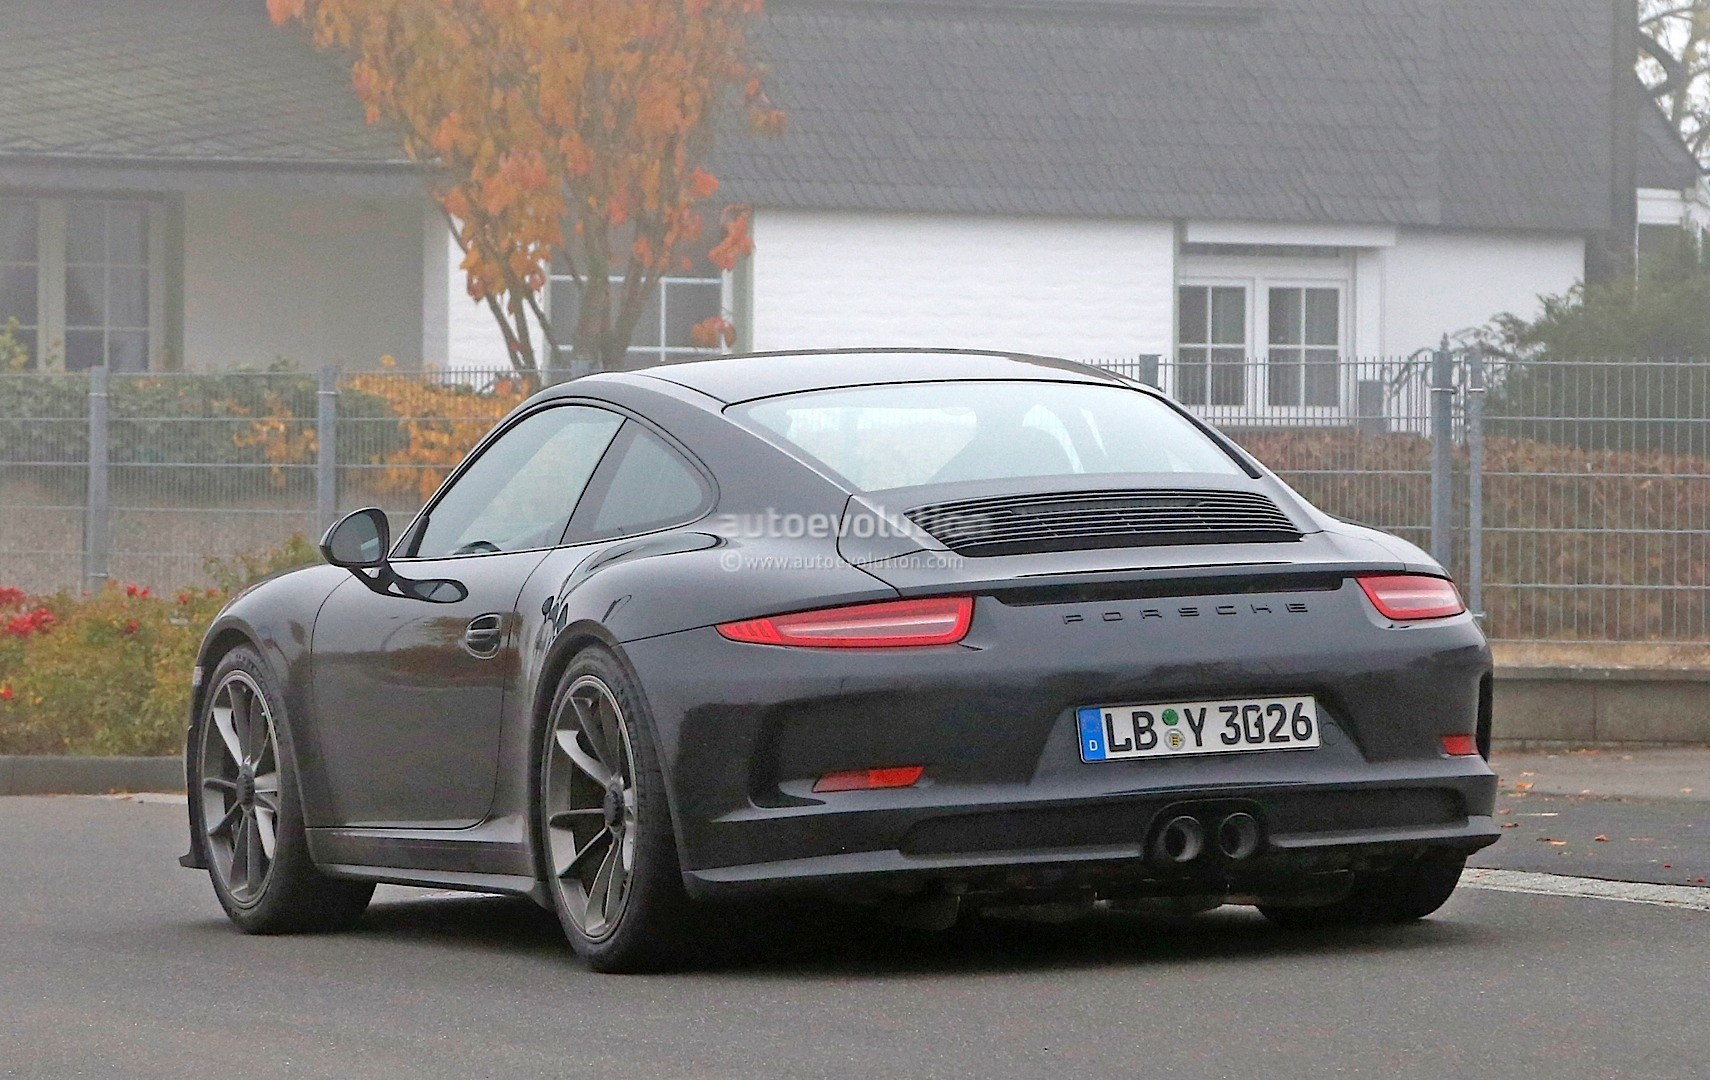 2017 porsche 911 r spied for the first time gt3 engine with a manual